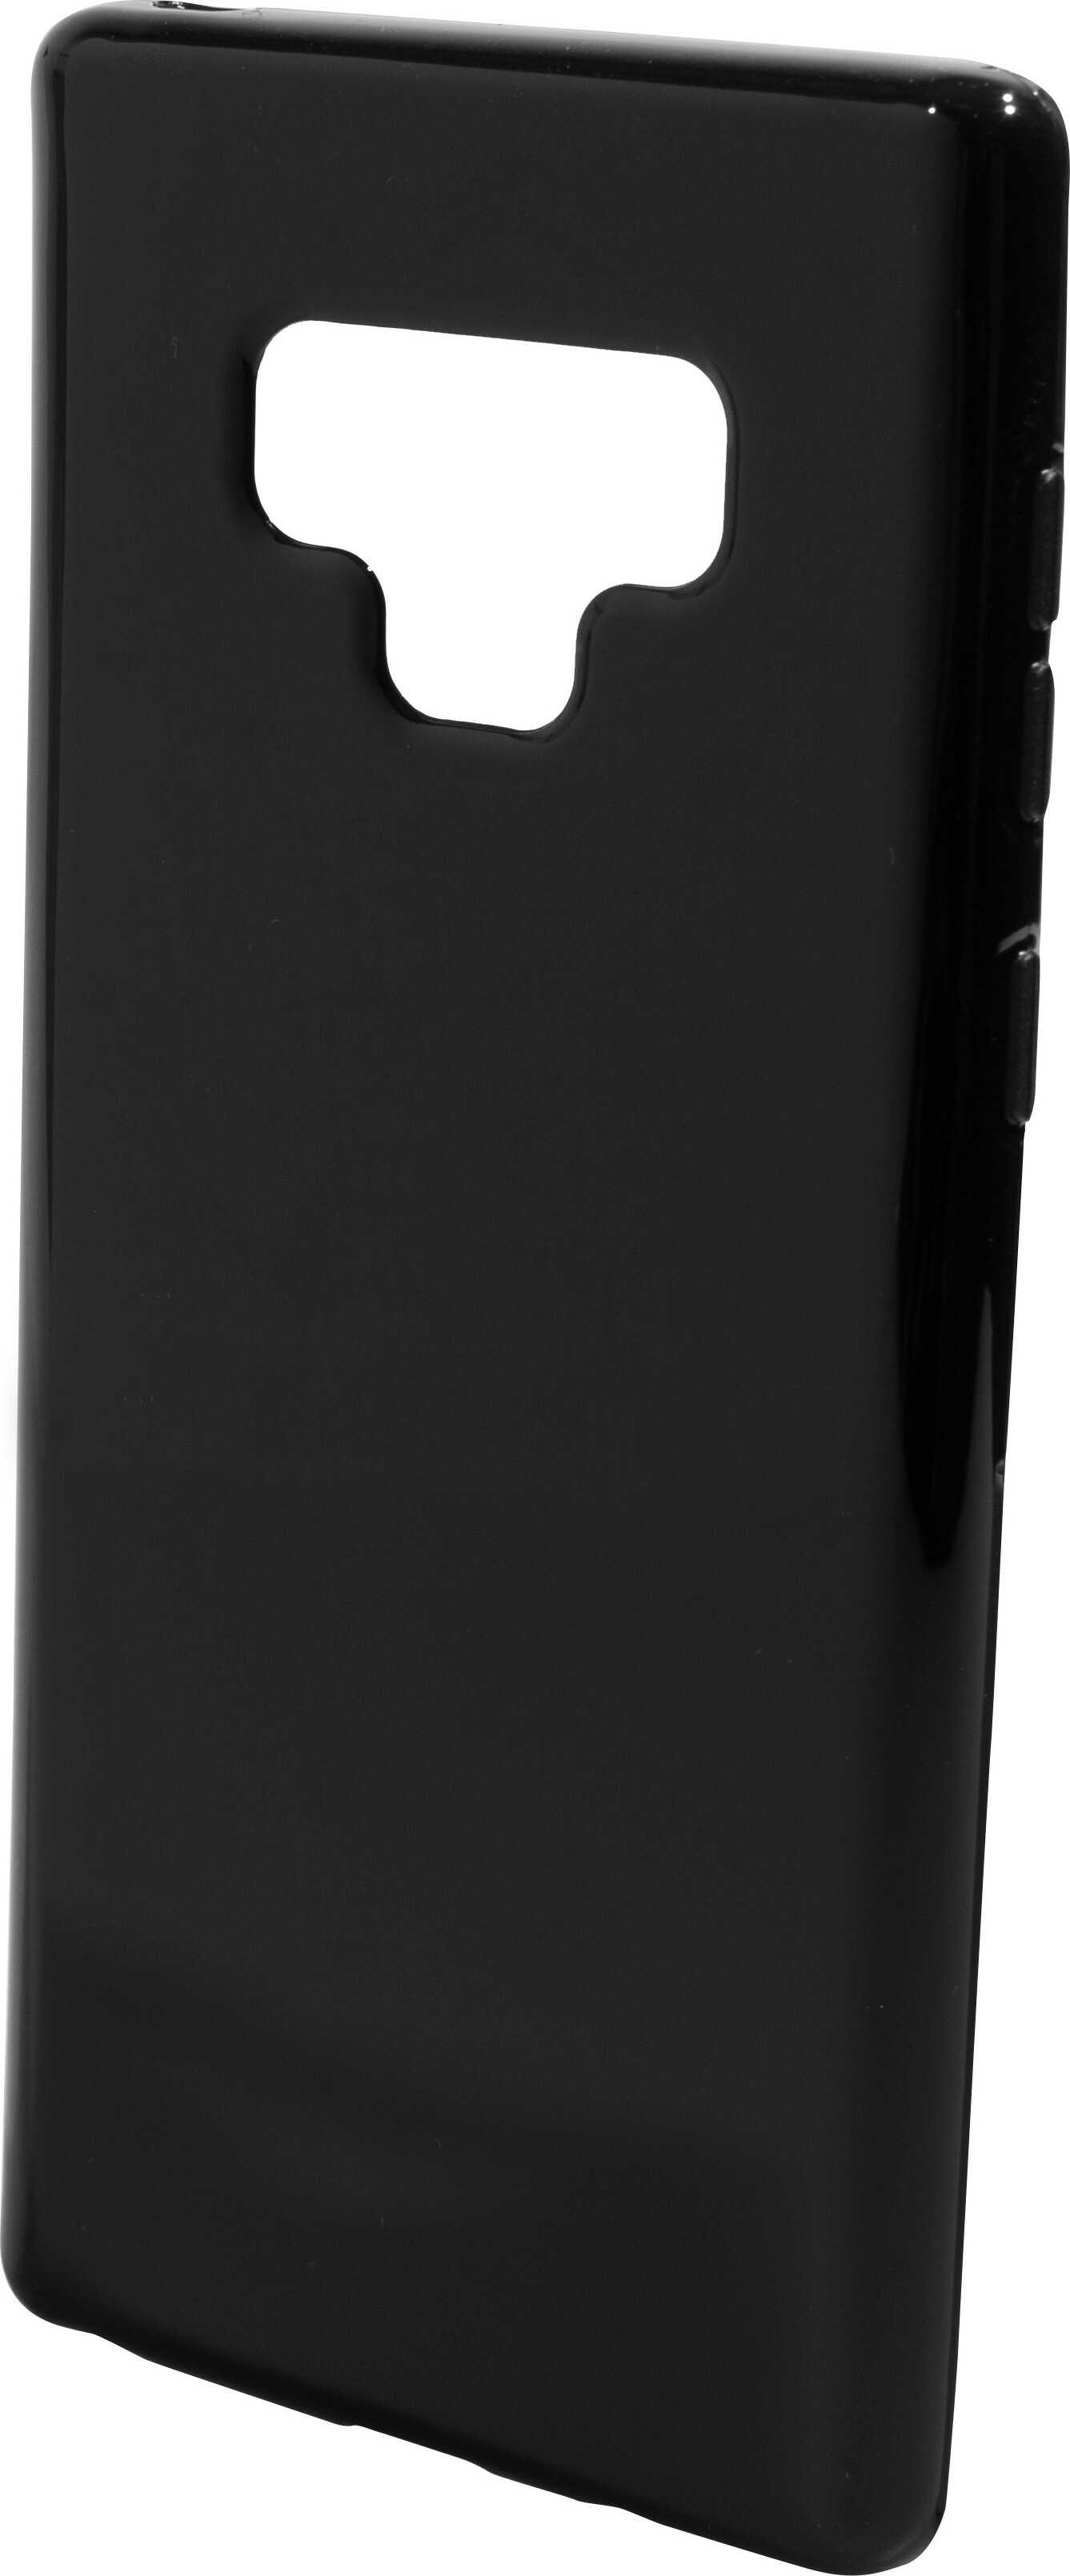 Mobiparts Classic TPU Case Samsung Galaxy Note 9 Black